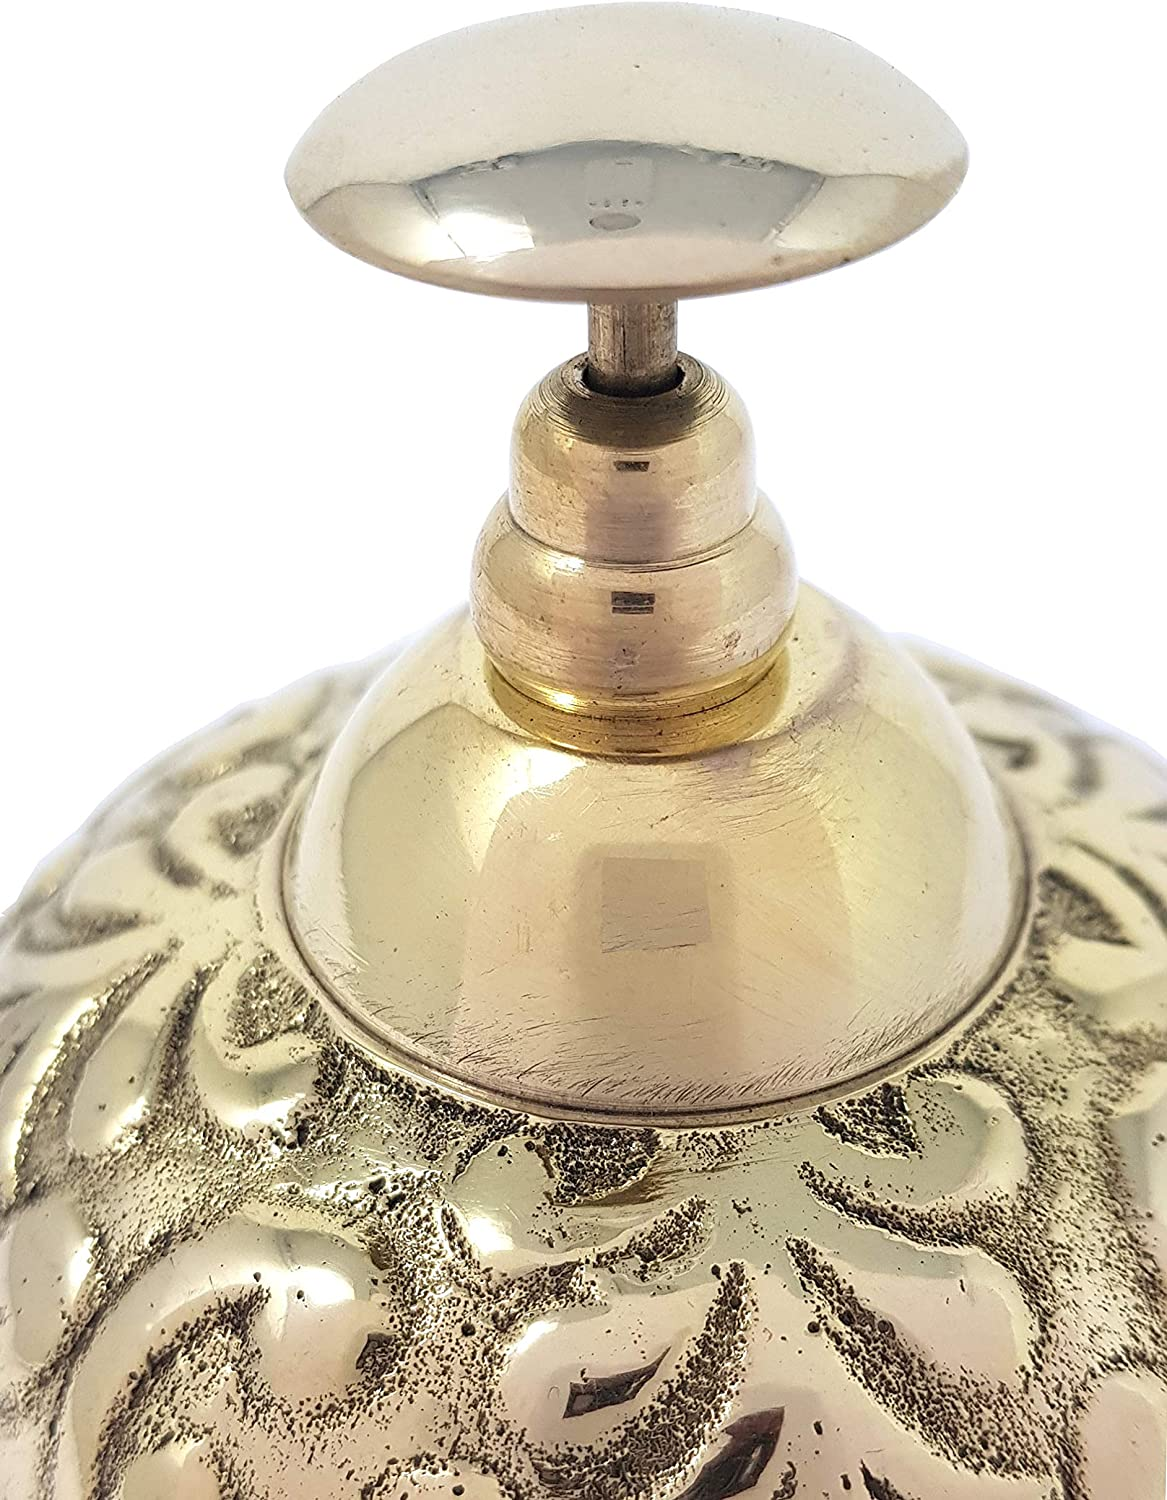 Desk Bell Table Bells Call Bell Reception Bell Brass Nautical 3.5 Inches